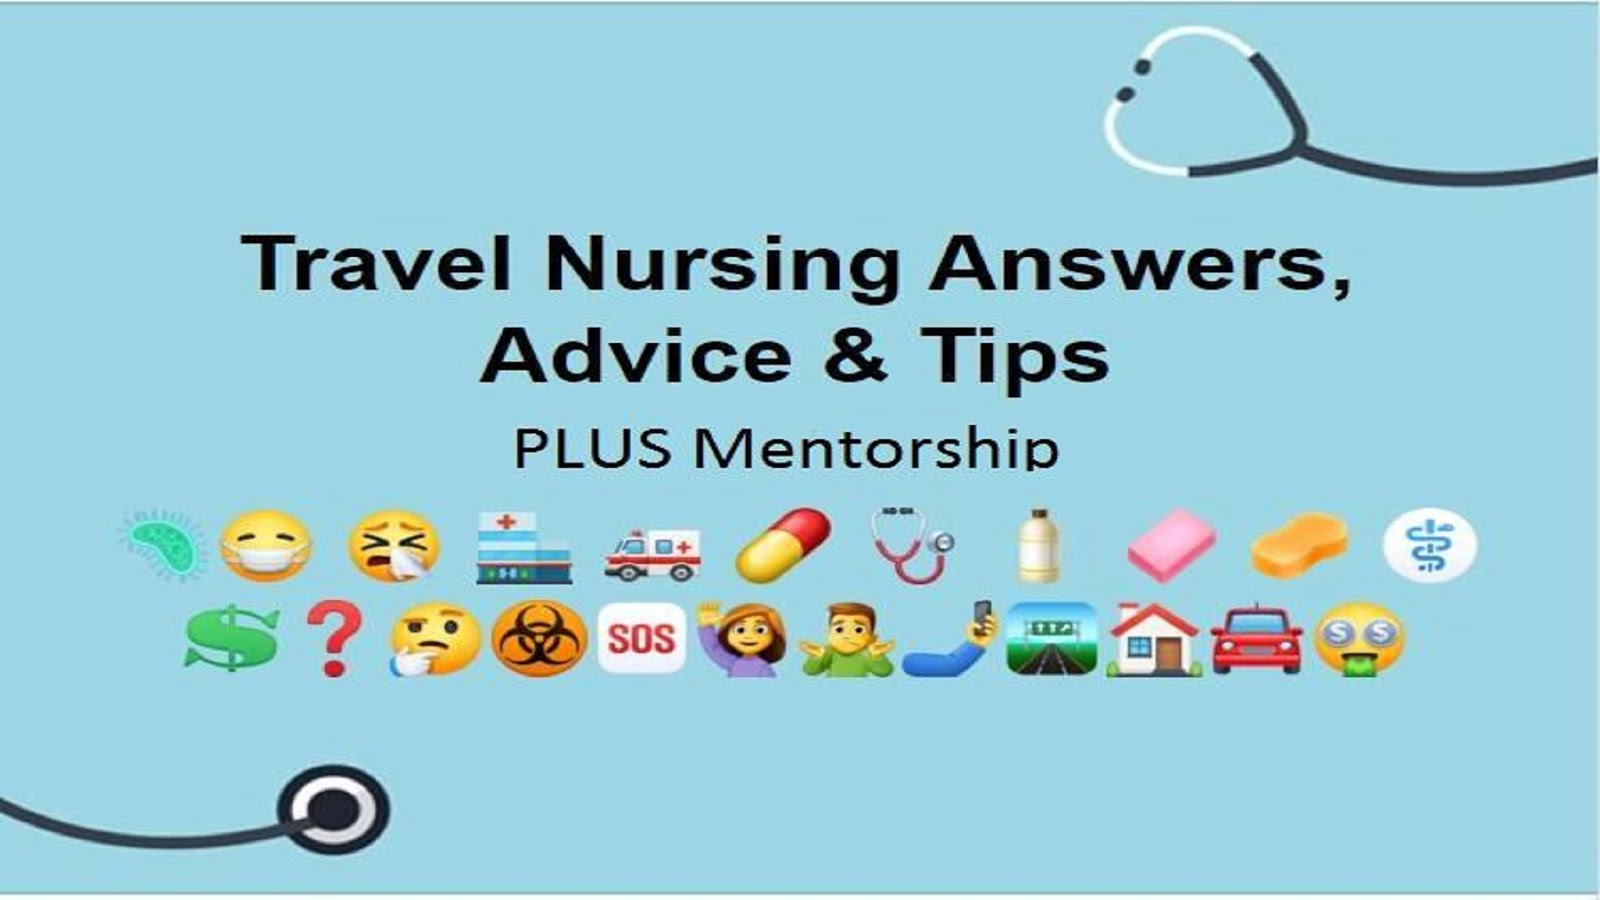 Travel Nursing Answers, Advice, and Tips PLUS Mentorship